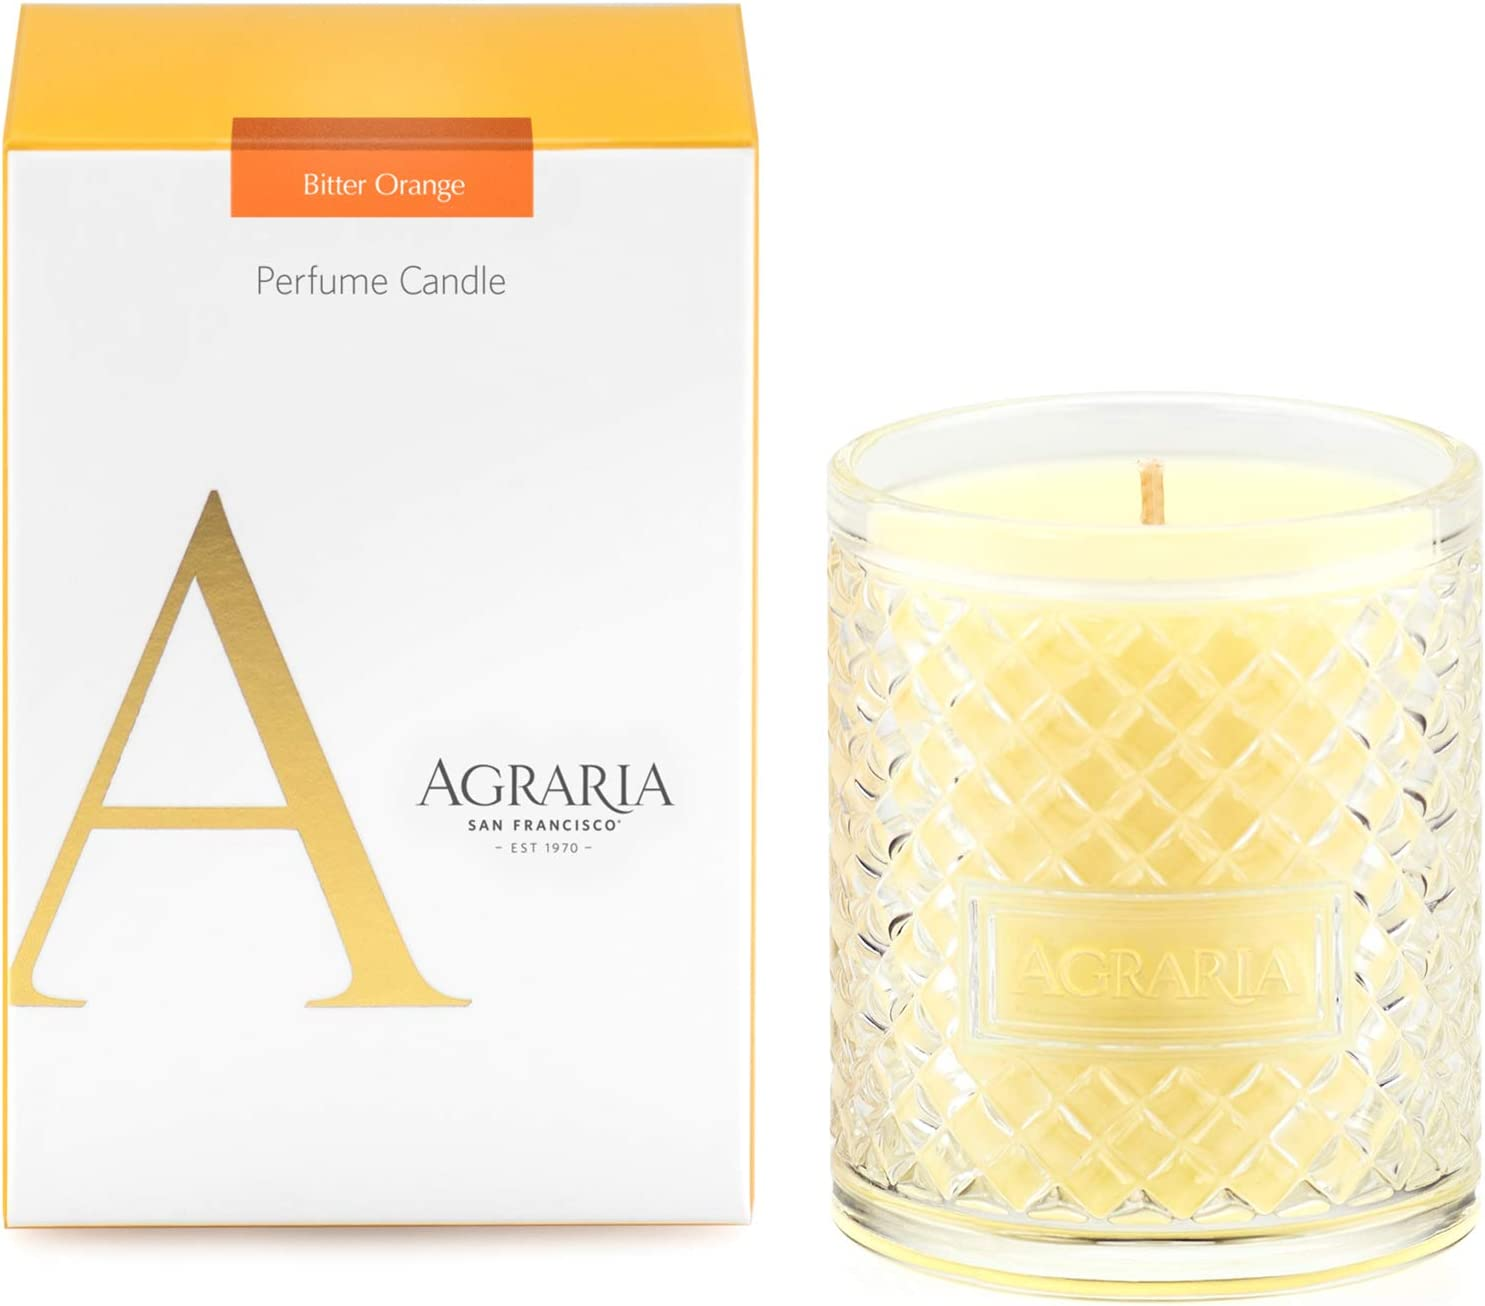 AGRARIA Bitter Orange Scented 7oz Perfume Candle - Premium Soy-Based Wax